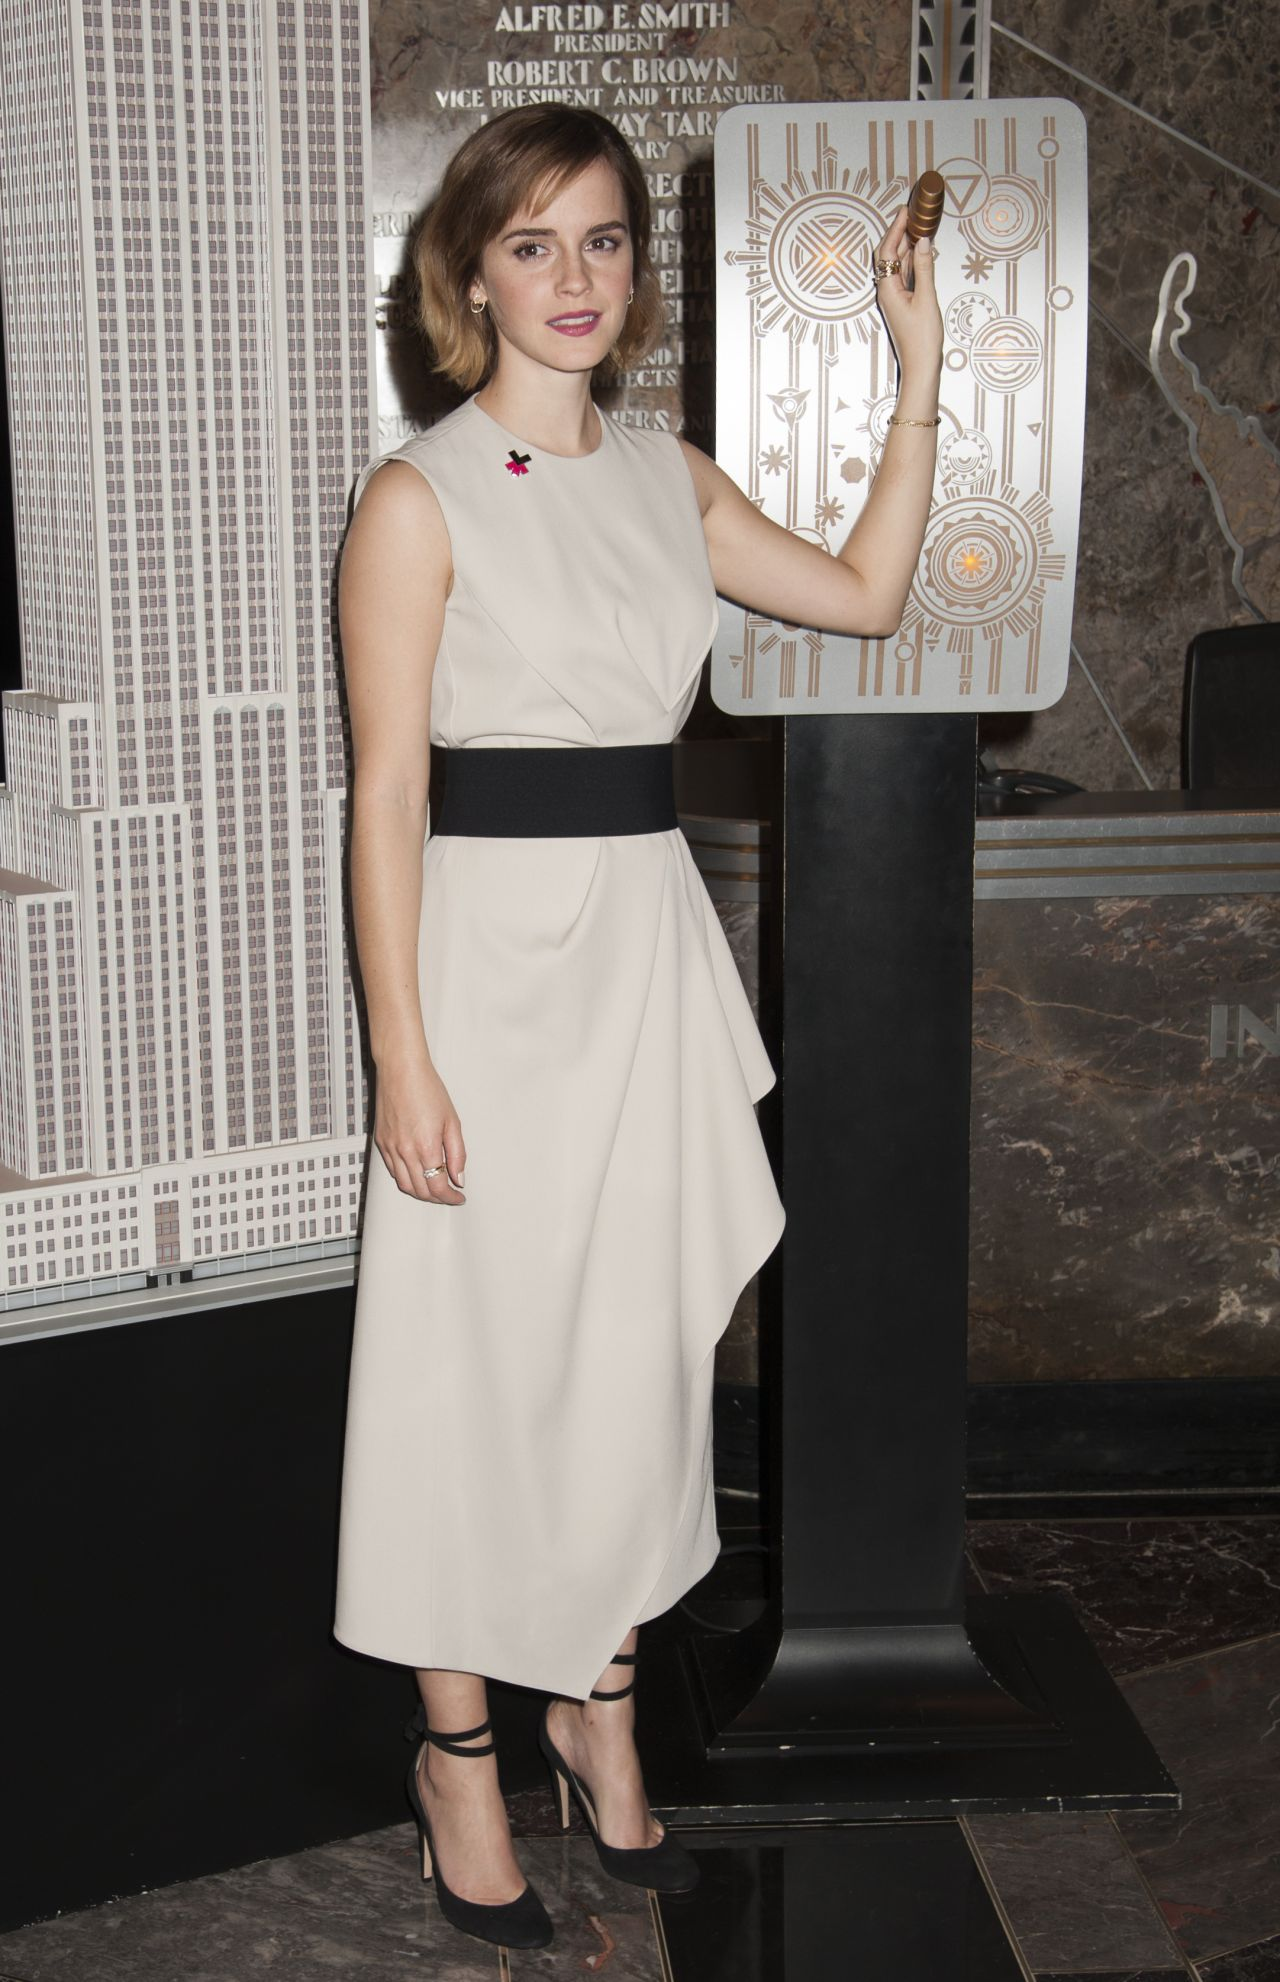 emma-watson-lights-the-empire-state-building-for-international-women-s-day-in-nyc-march-8-2016-2